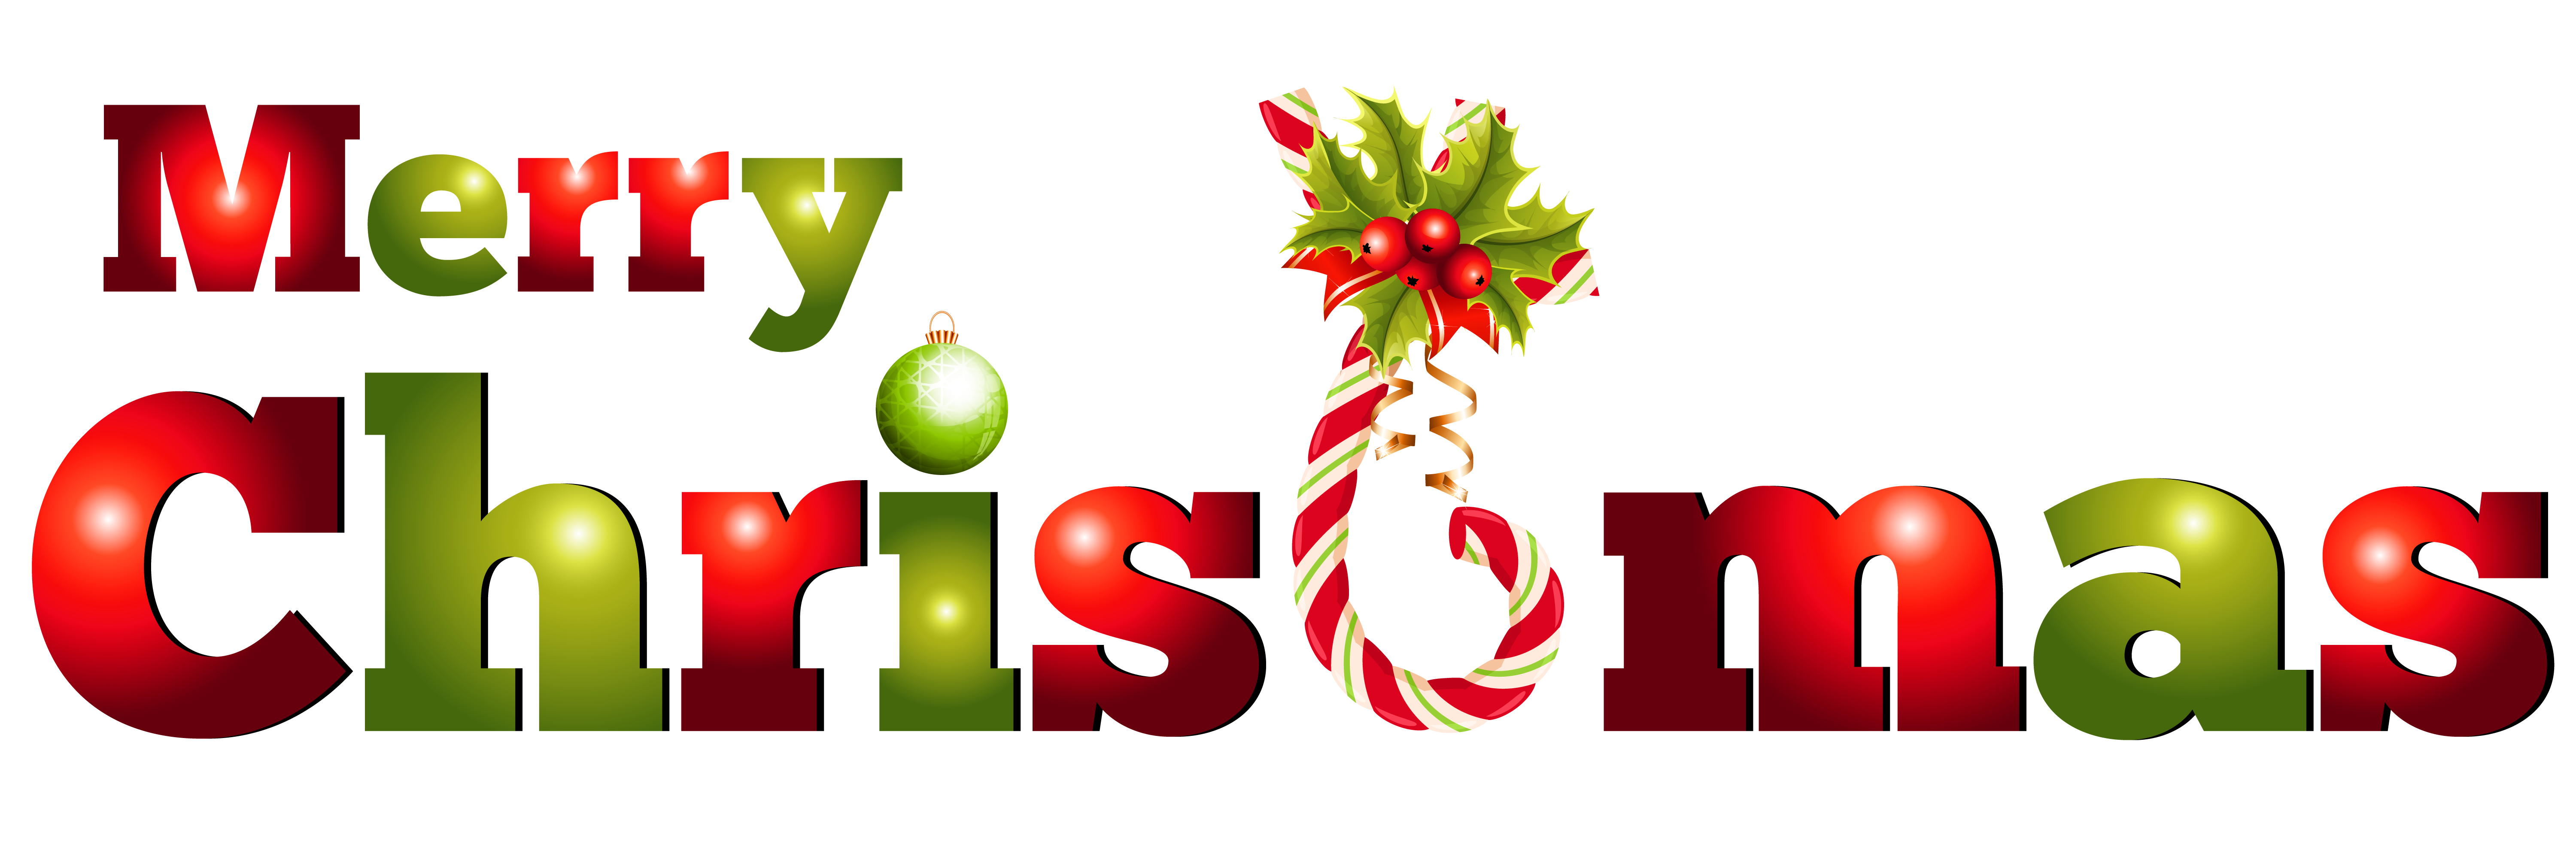 Merry christmas banner png. On this wonderful occasion